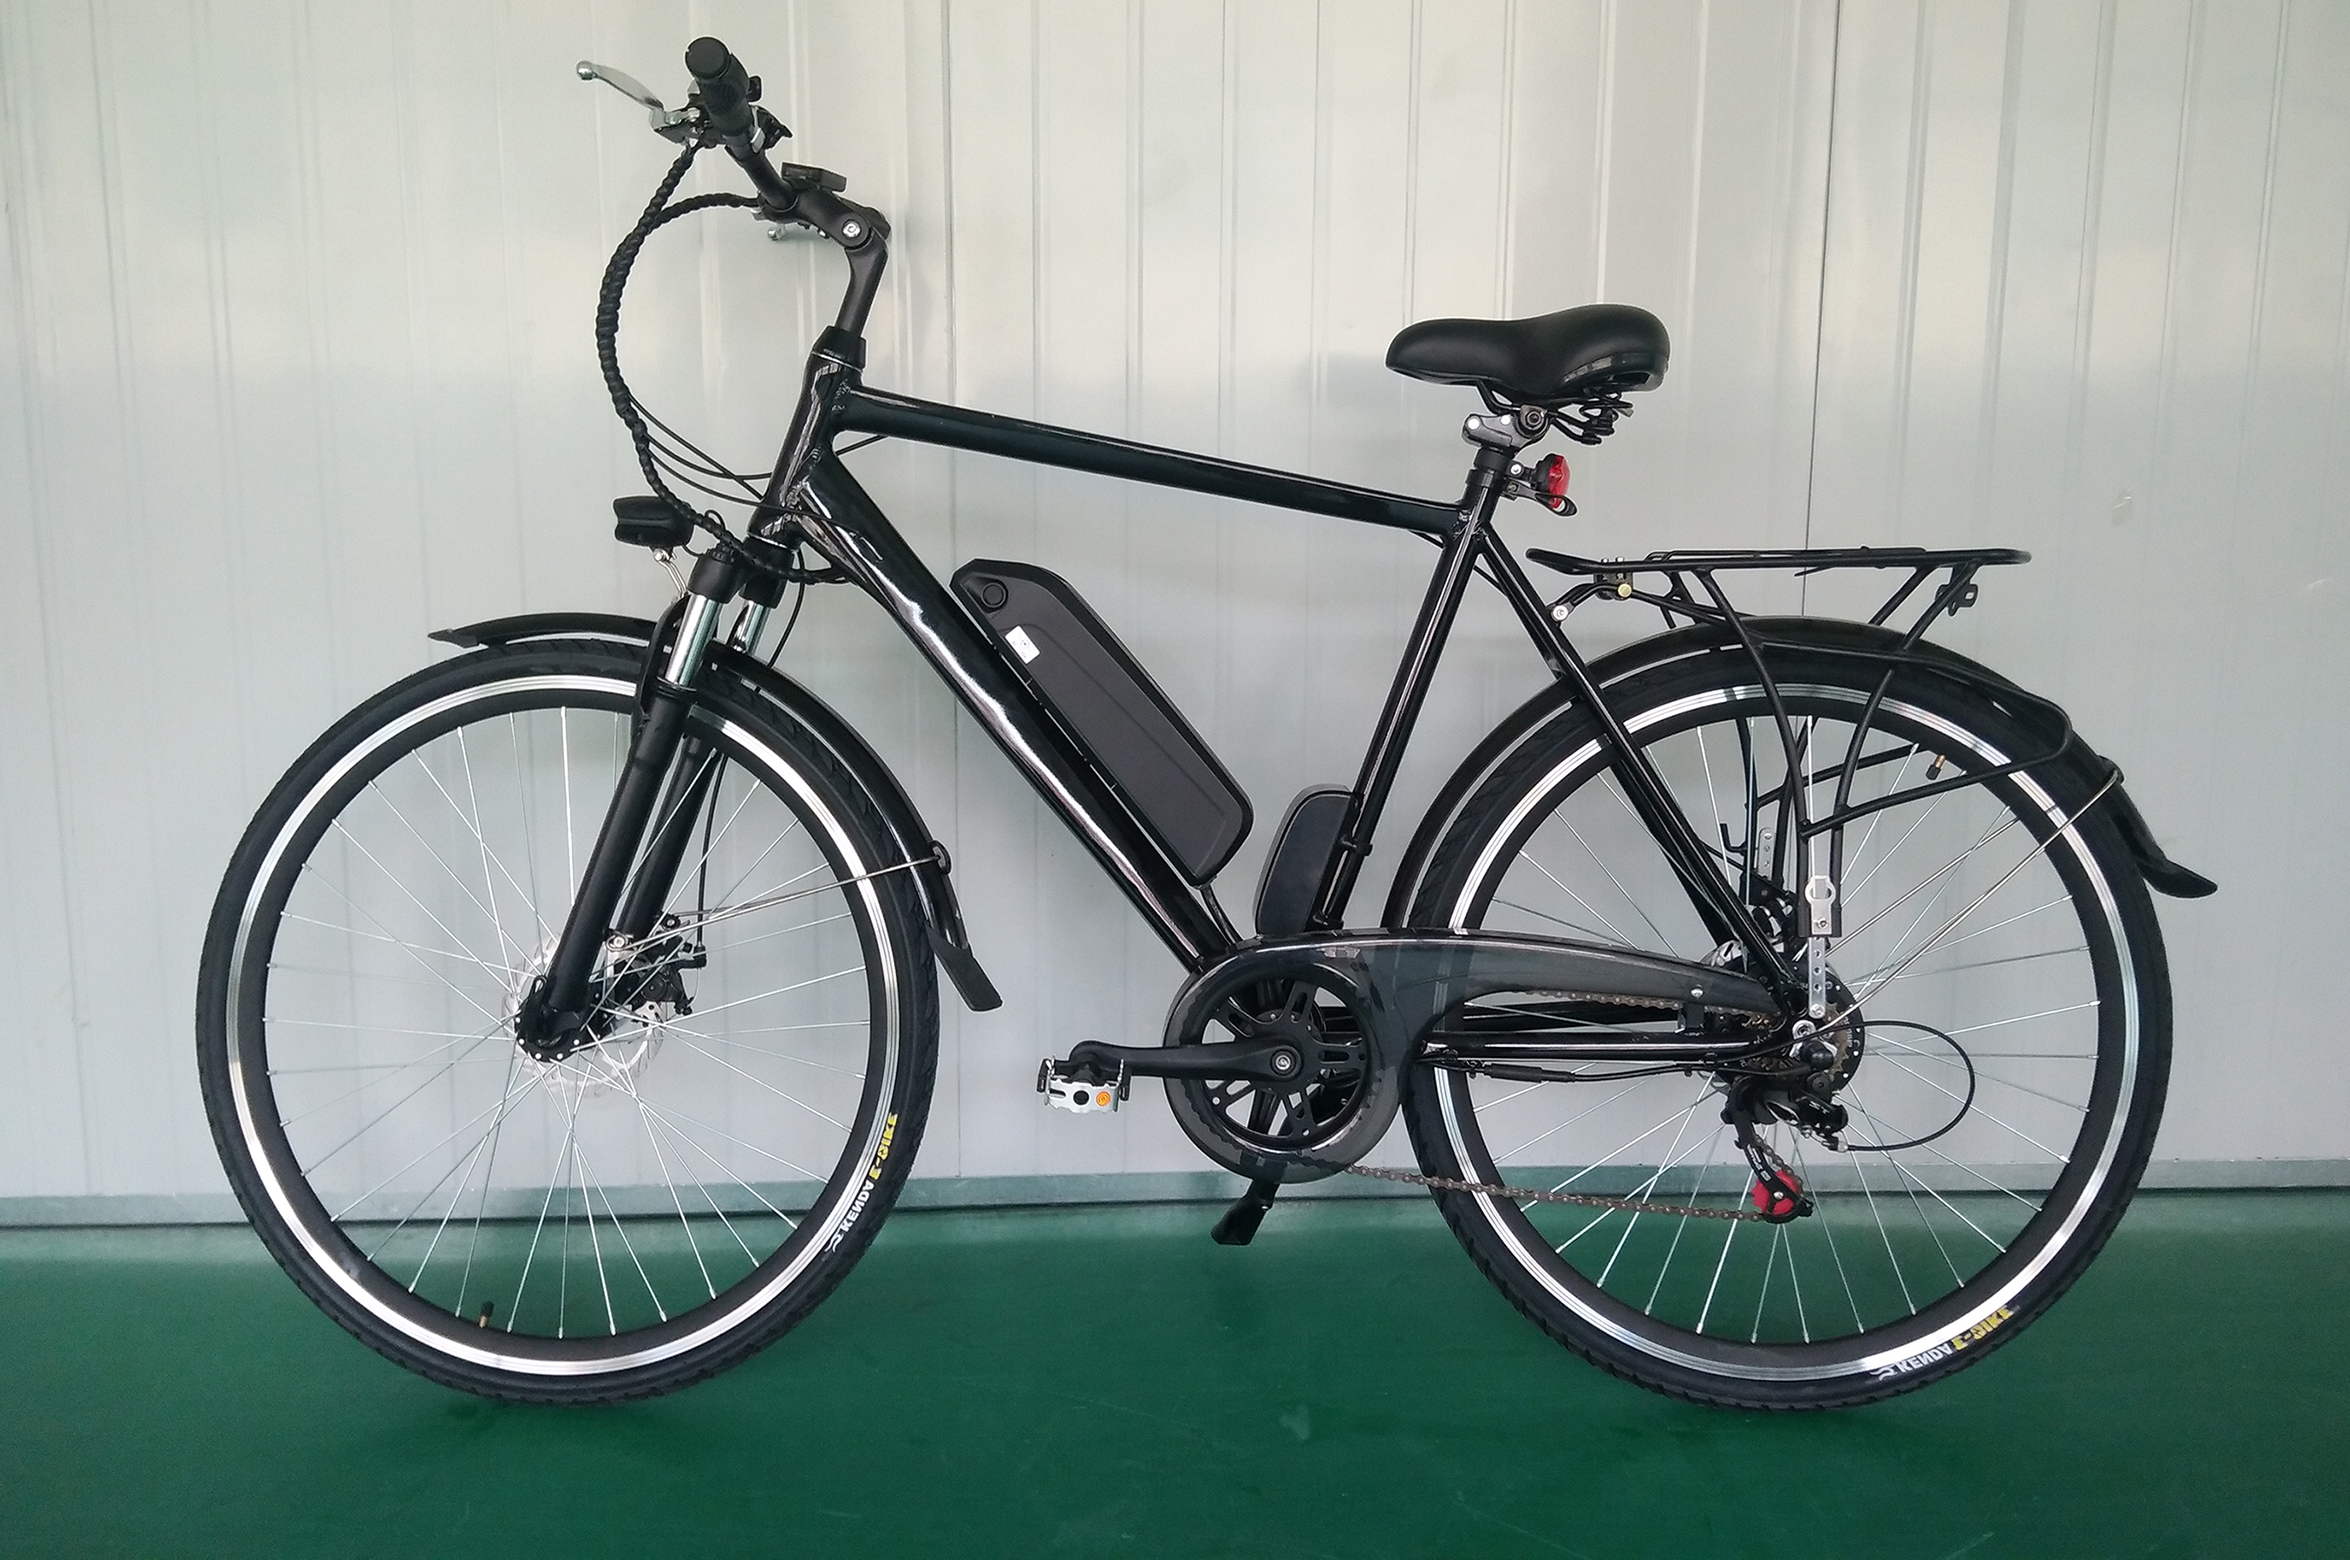 Six speed changed electric bicycle